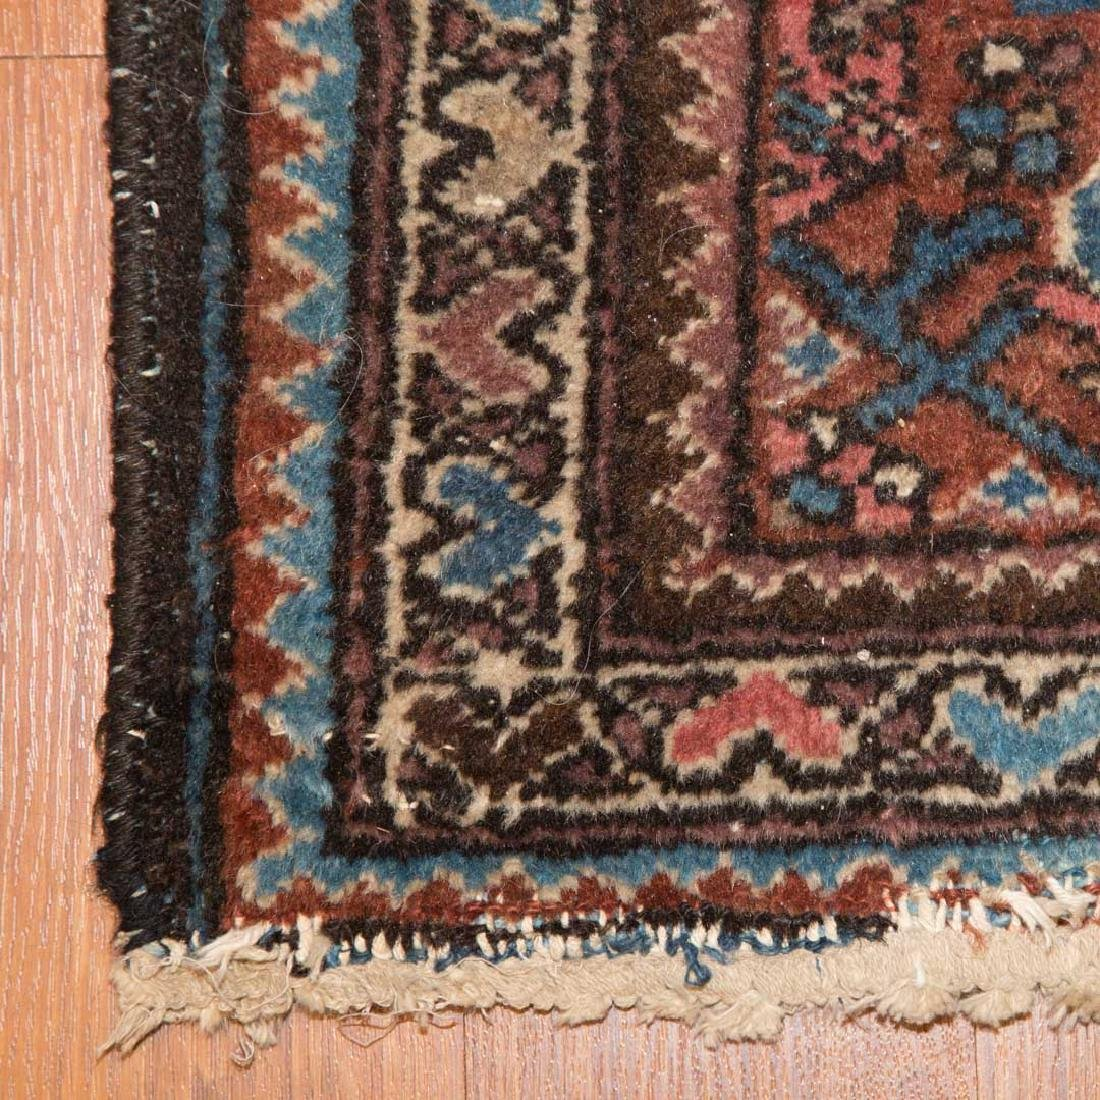 Two Persian Hamadan rugs, Iran, circa 1940 - 5